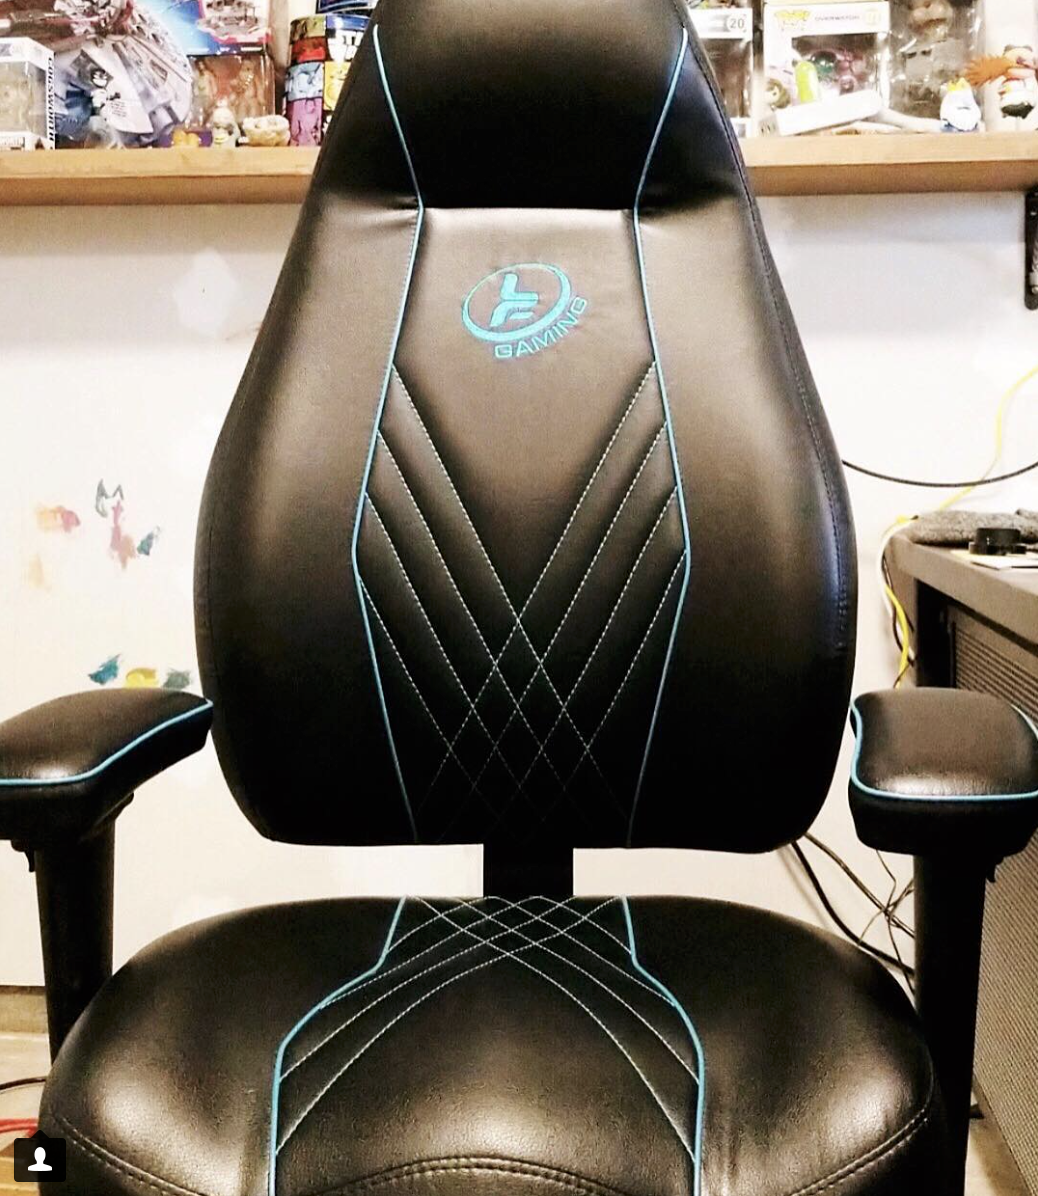 Swell Influencerstuff Lf Gaming Stealth Chair Influencers Spiritservingveterans Wood Chair Design Ideas Spiritservingveteransorg